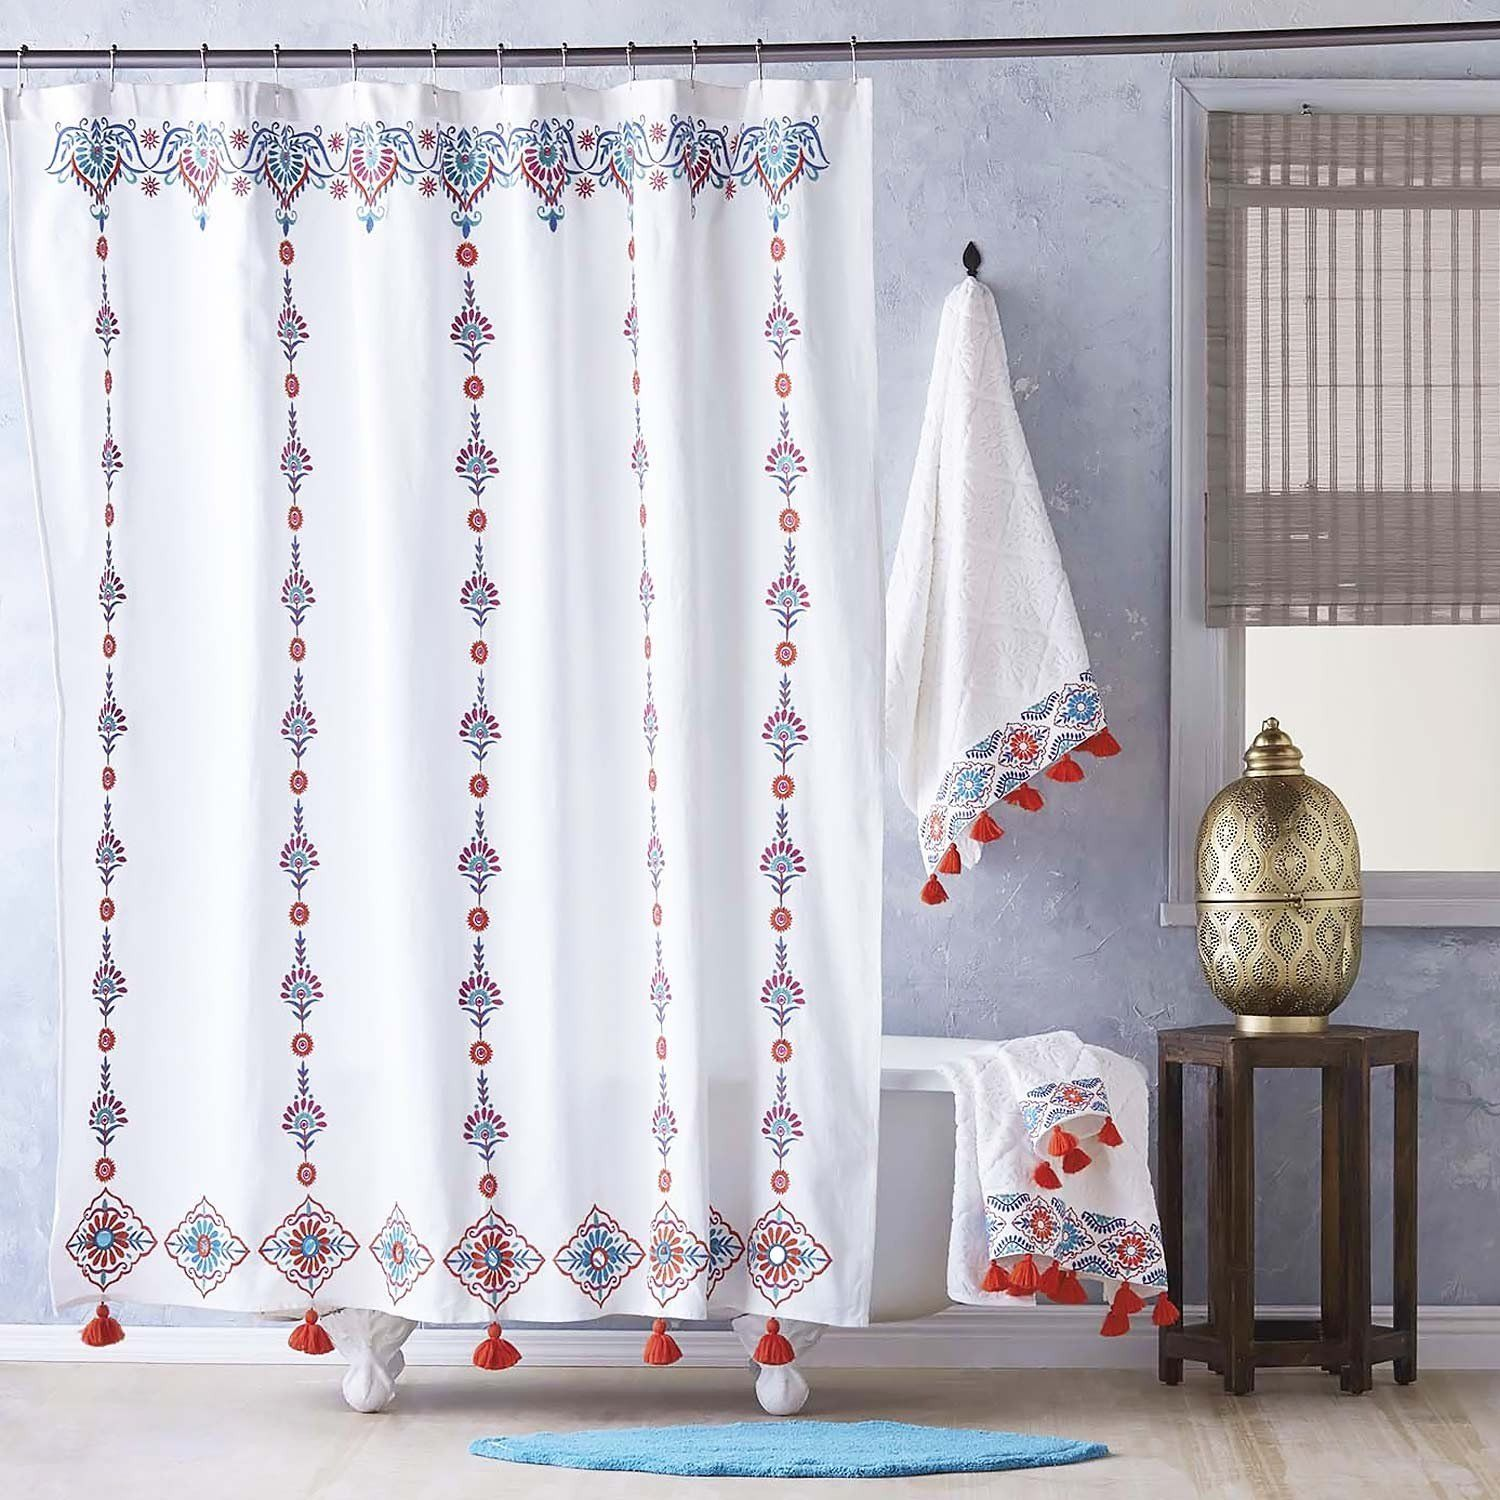 Aloka Coral Shower Curtain By John Robshaw Coral Shower Curtains